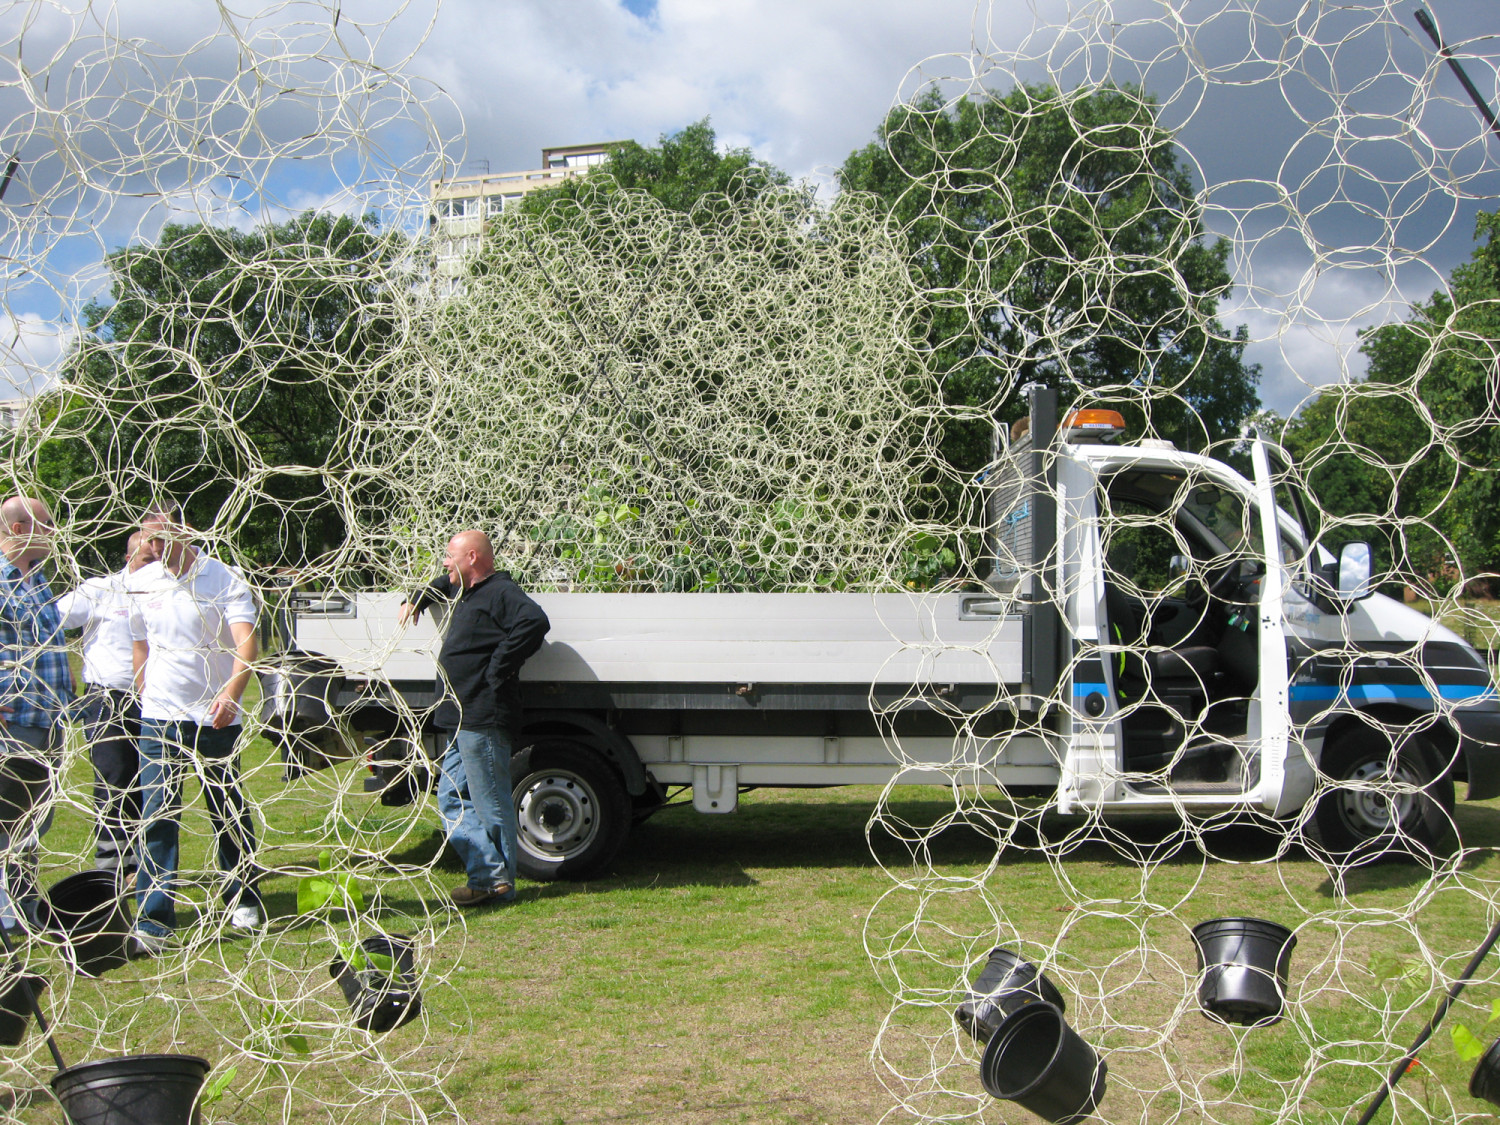 A living green pavilion with biological membranes designed for the Shoreditch Festival 2009.